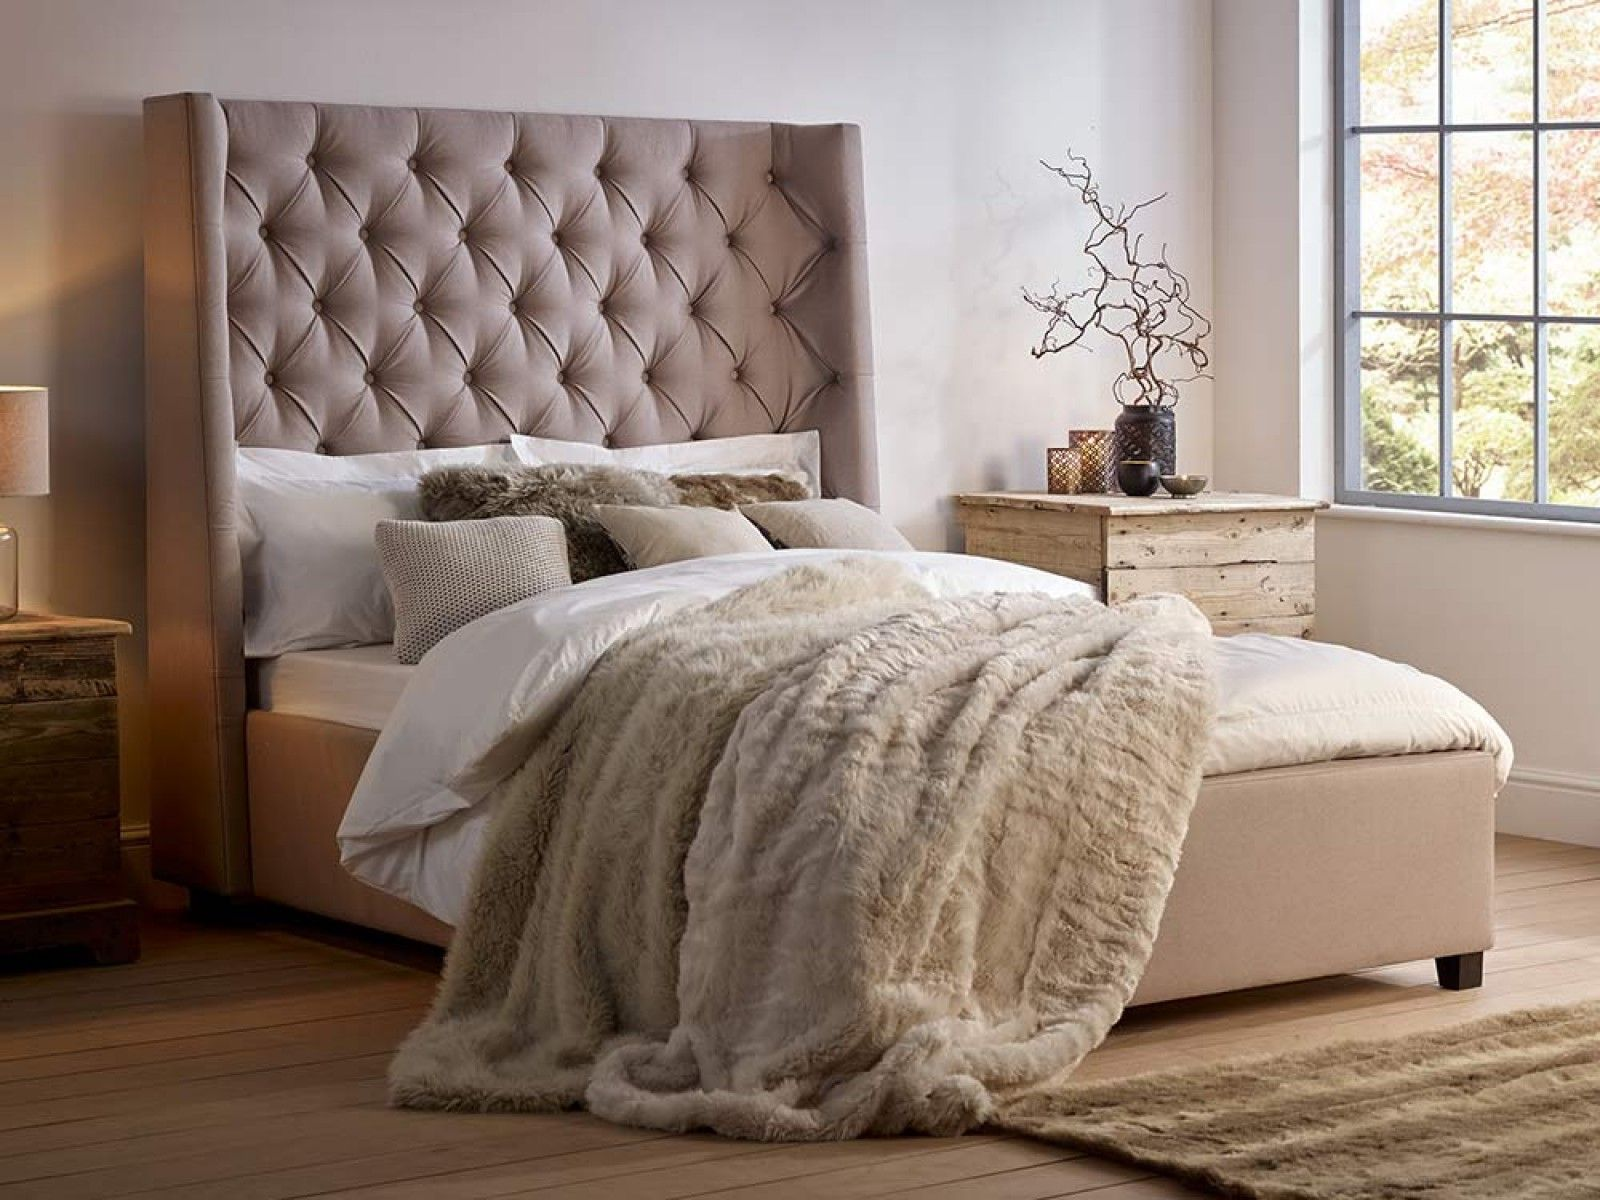 beds standing winged studs headboard with chelsea wing giovana chesterfield web floorboard joseph floor